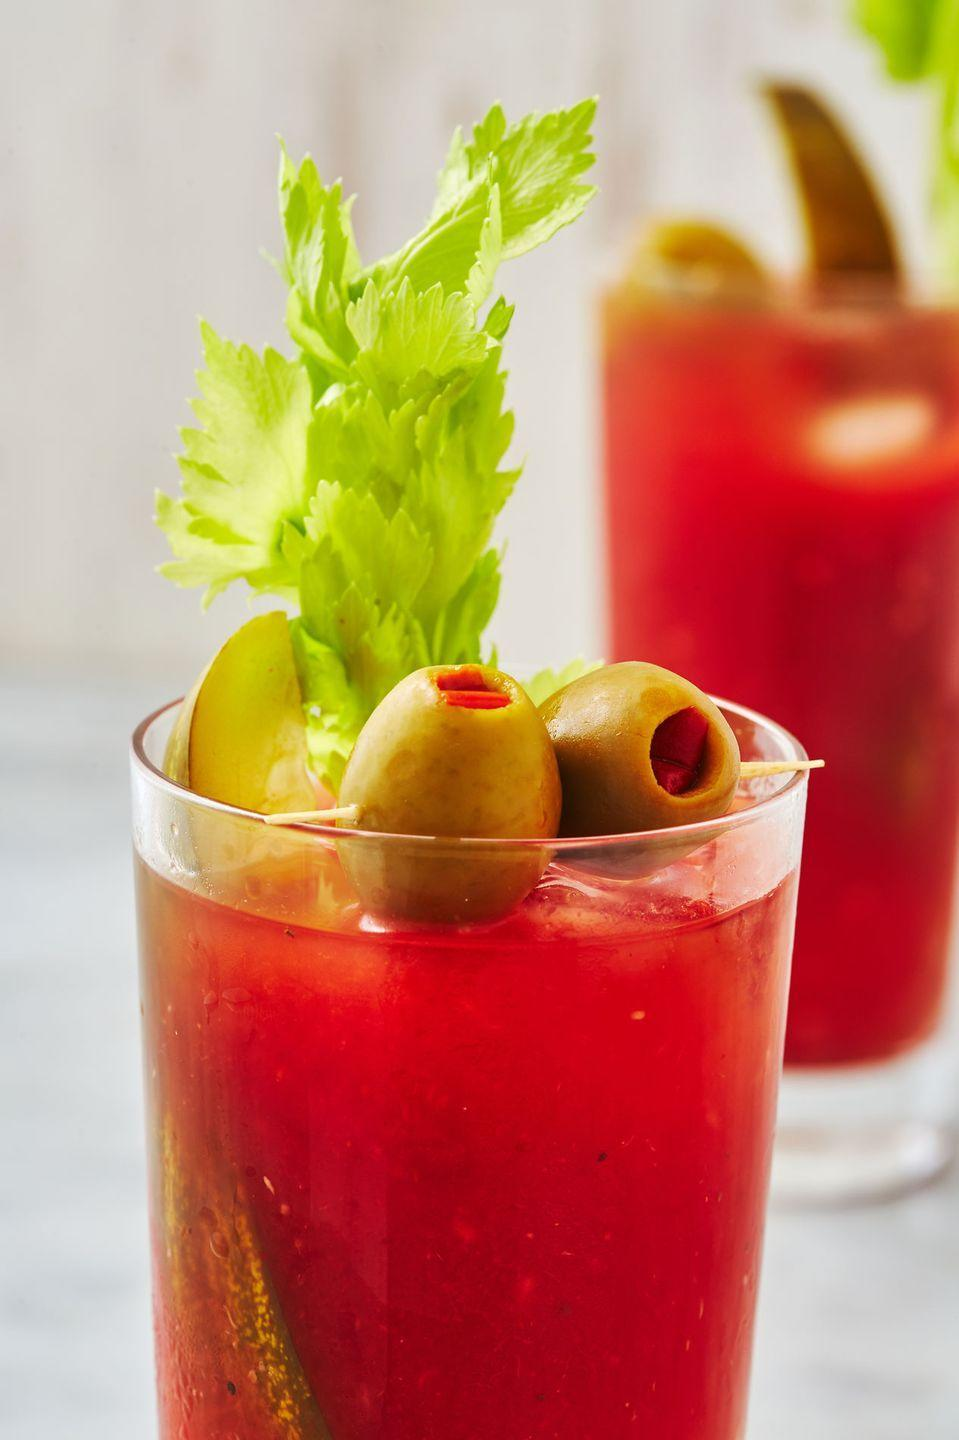 """<p>This Blood Mary recipe transforms standard pantry staples into the quintessential day drink.</p><p> Get the recipe from <a href=""""https://www.delish.com/cooking/recipe-ideas/a29125240/classic-bloody-mary-recipe/"""" rel=""""nofollow noopener"""" target=""""_blank"""" data-ylk=""""slk:Delish"""" class=""""link rapid-noclick-resp"""">Delish</a>.</p>"""